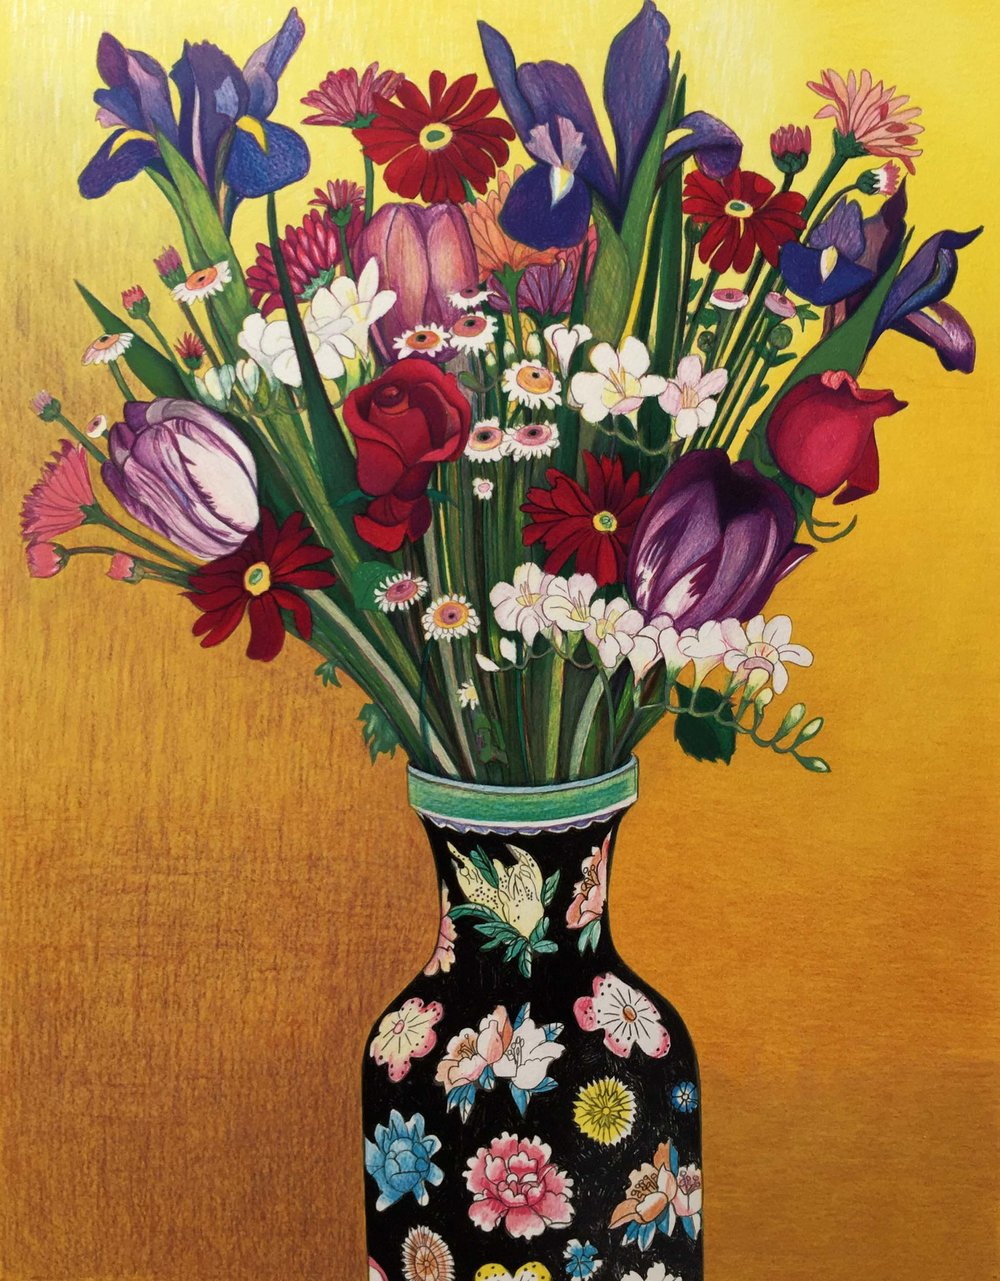 Flowers, Flowered Vase